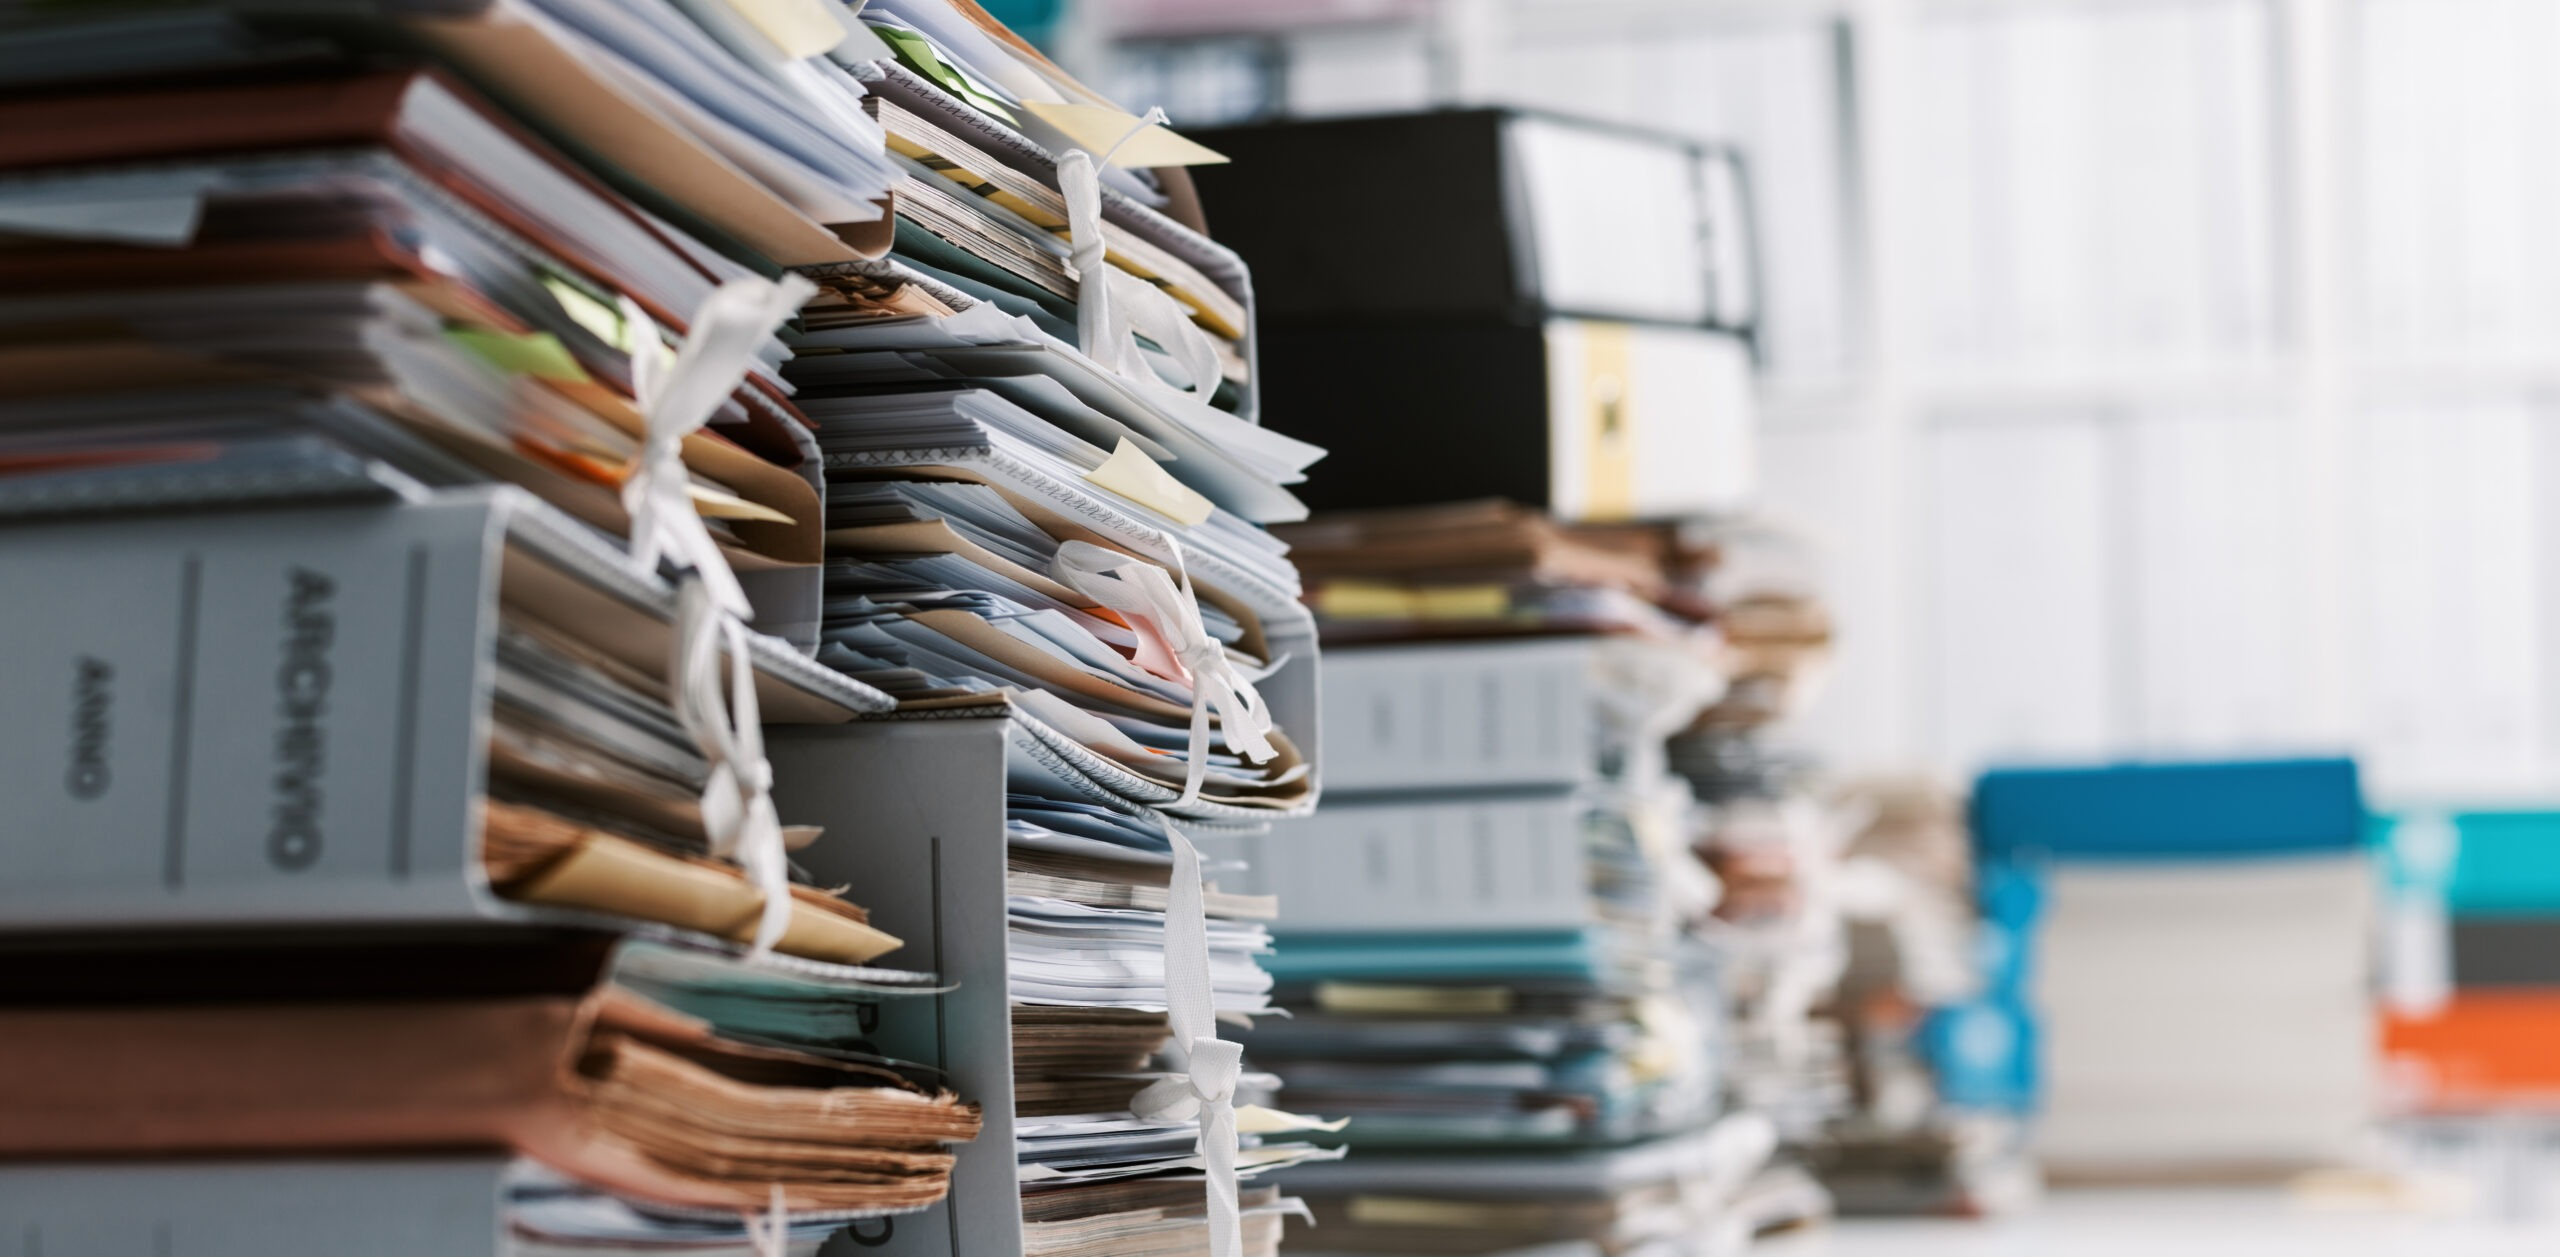 Stacks of paperwork and files in the office: work overload, files management and administration concept